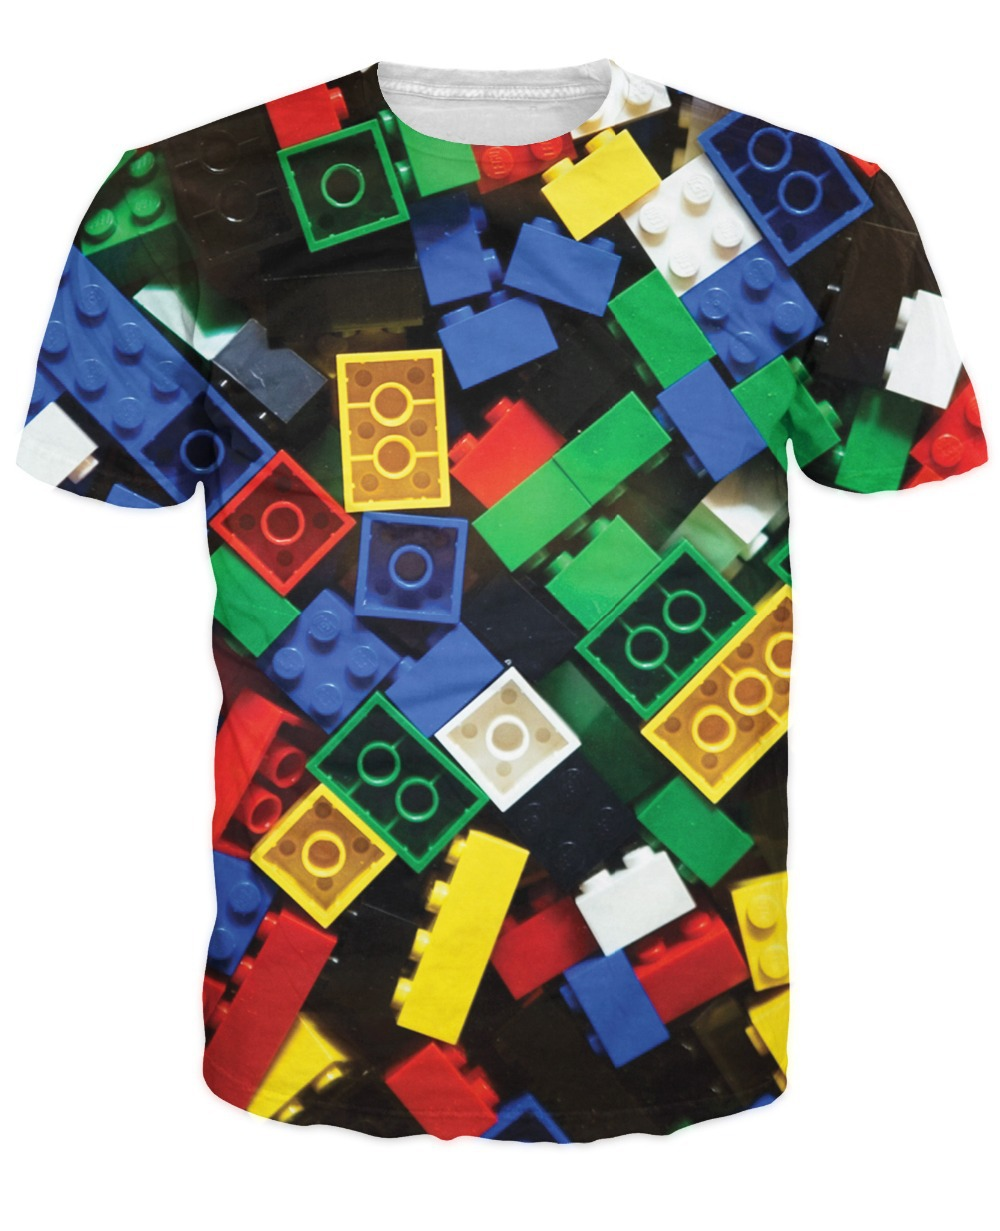 Summer Style Lego Bricks T Shirt Super Popular Childrens Toy 3d Movie Tee Print Camisetas For Unisex Women Men Plus Size S Xxl In Shirts From Womens